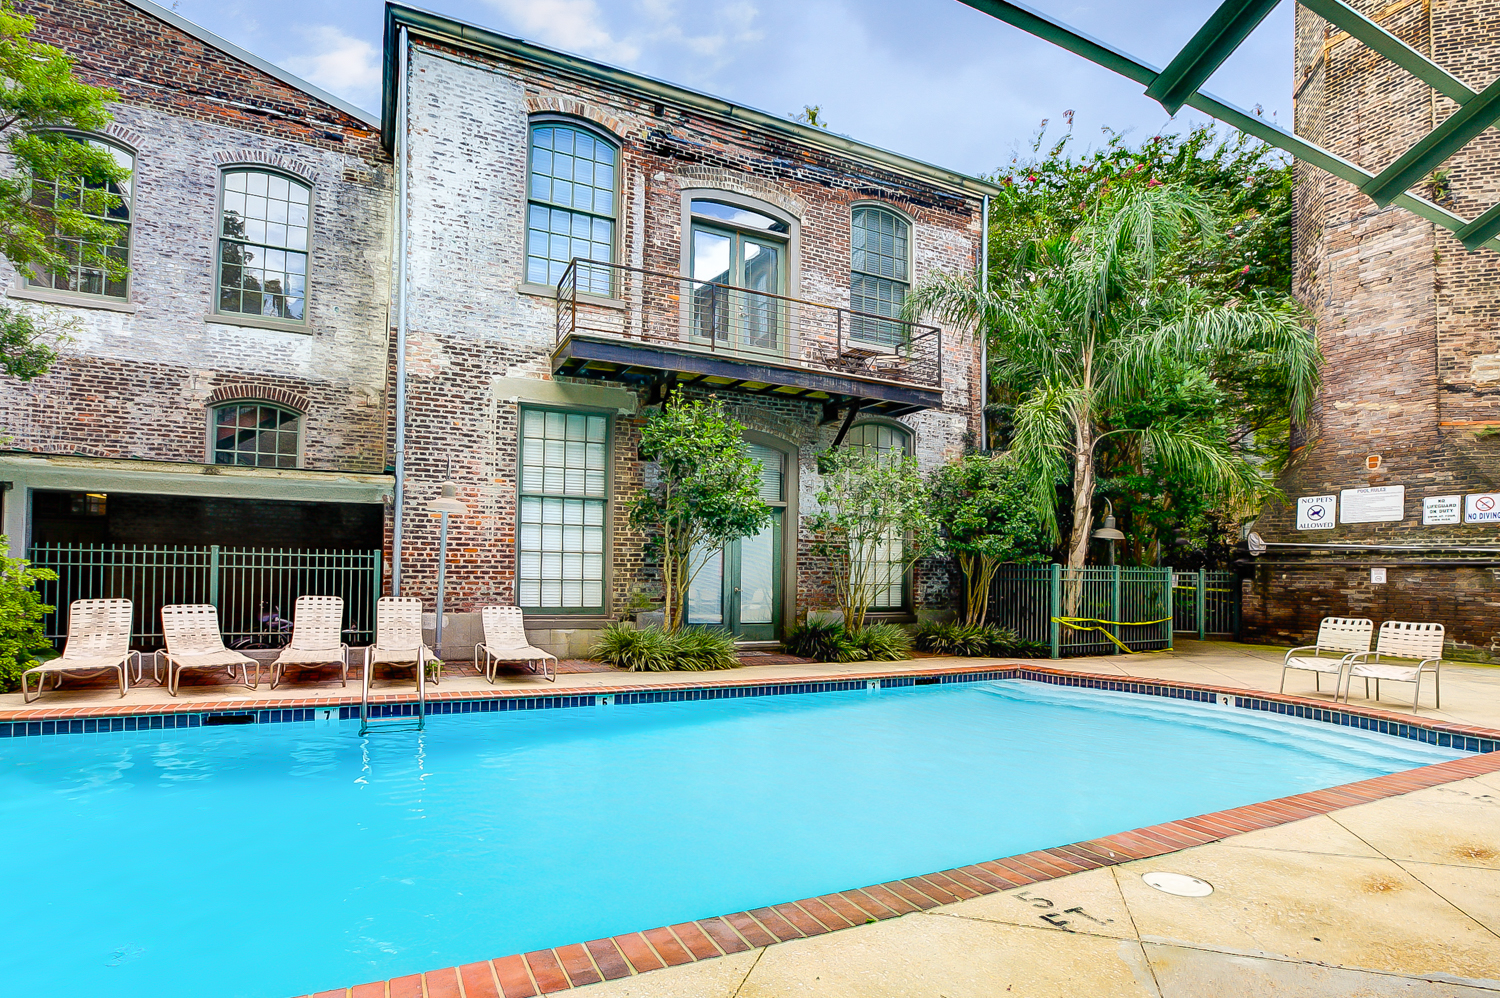 CBD/Warehouse District/South Market, Condo, 3 beds, 2.0 baths, $5000 per month New Orleans Rental - devie image_15